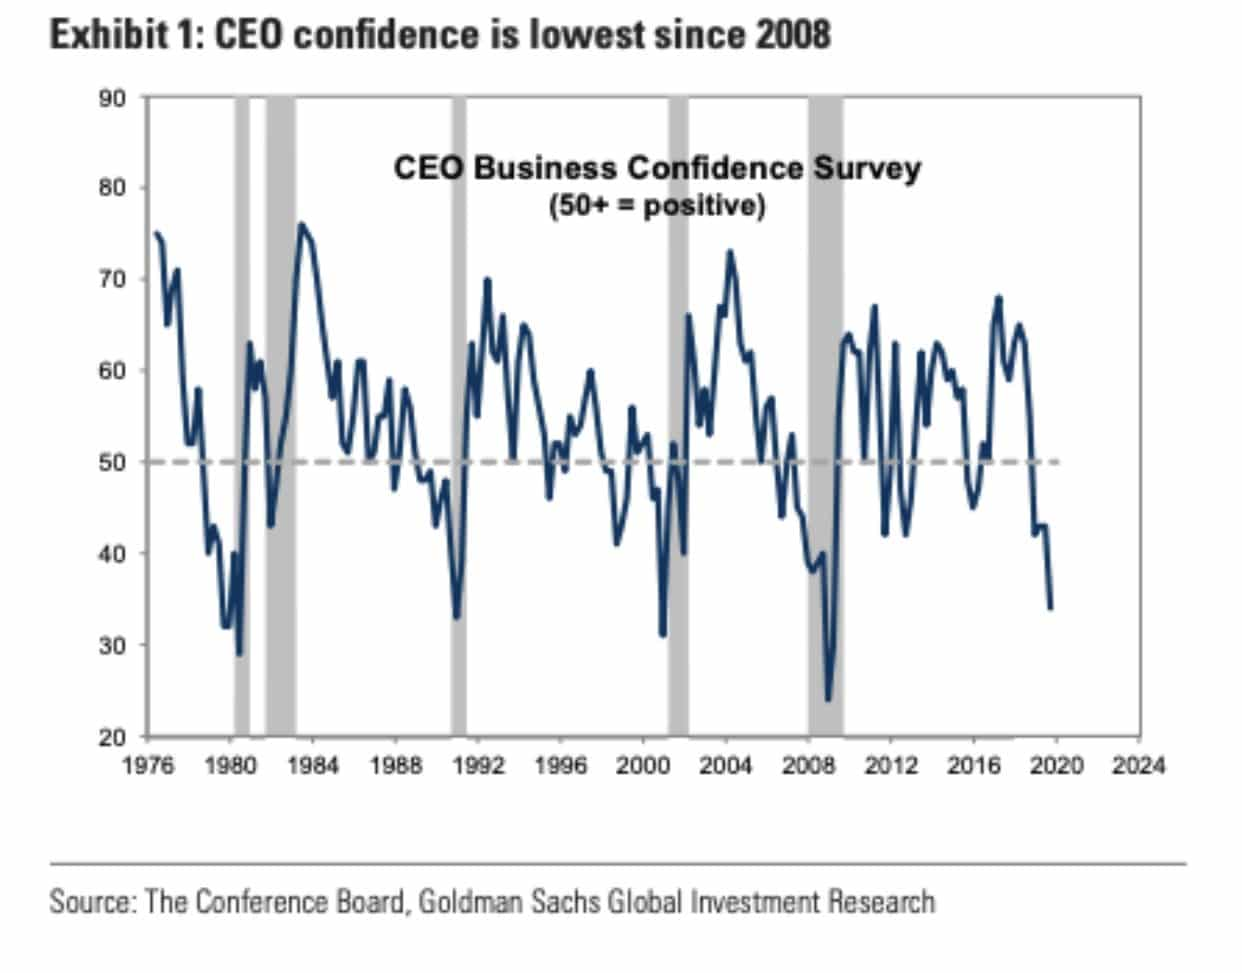 ceo-confidence-is-lowest-since-2008-2019-11-05